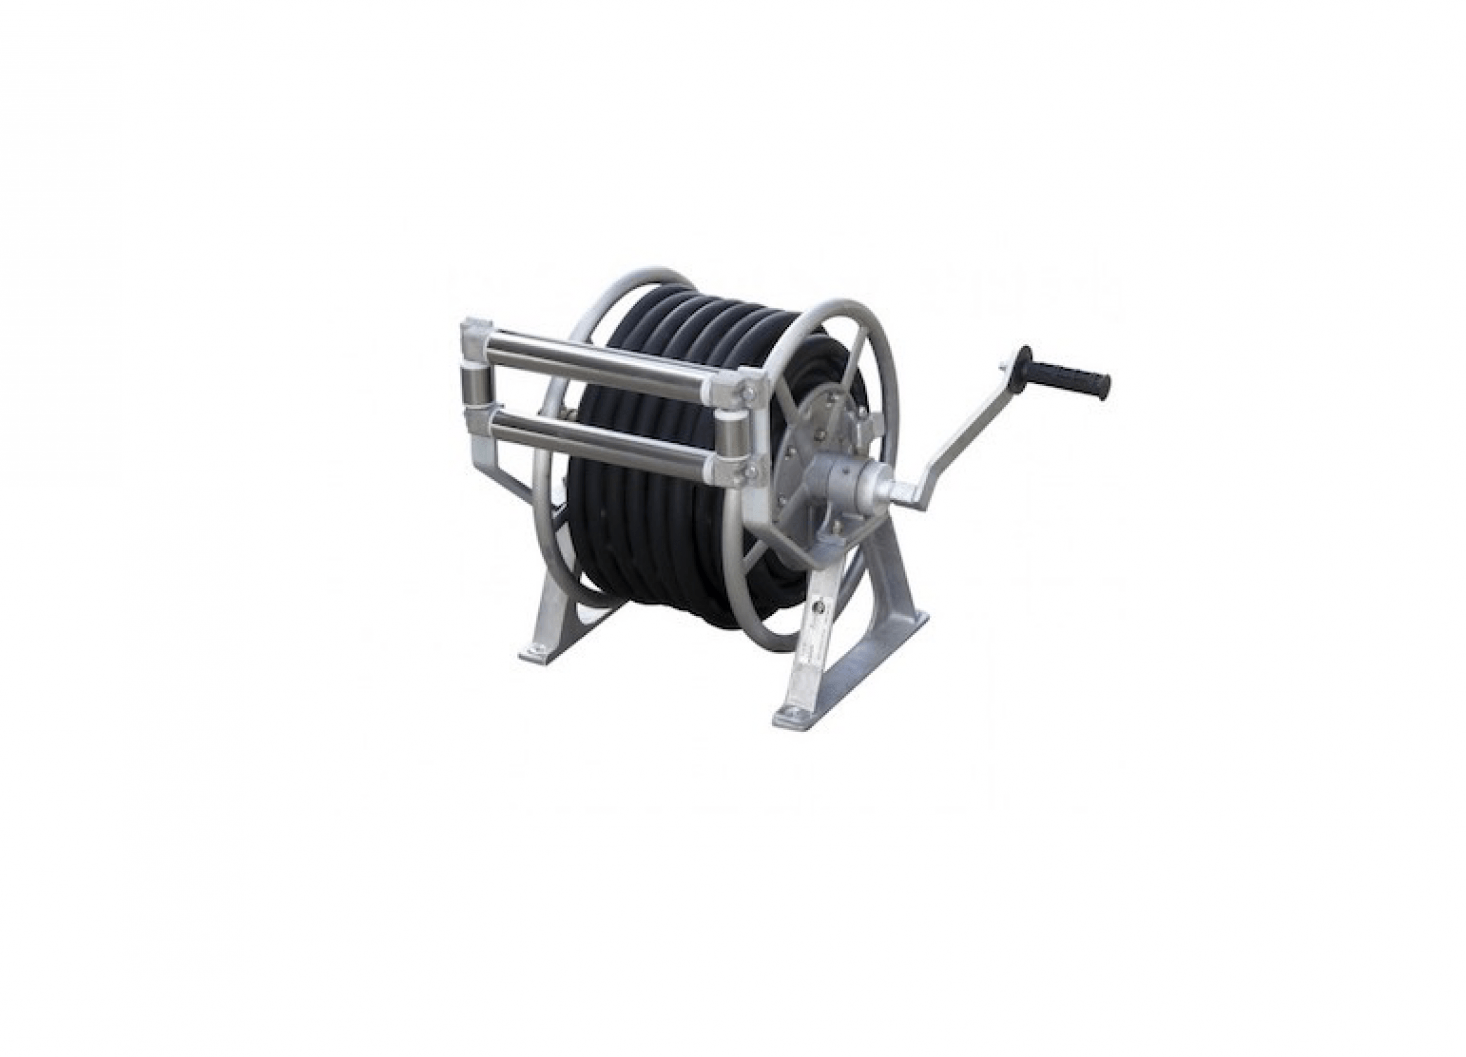 A Manual Rewind Hose Reel Can Be Customized To Fit Several Diameters And  Lengths Of Garden